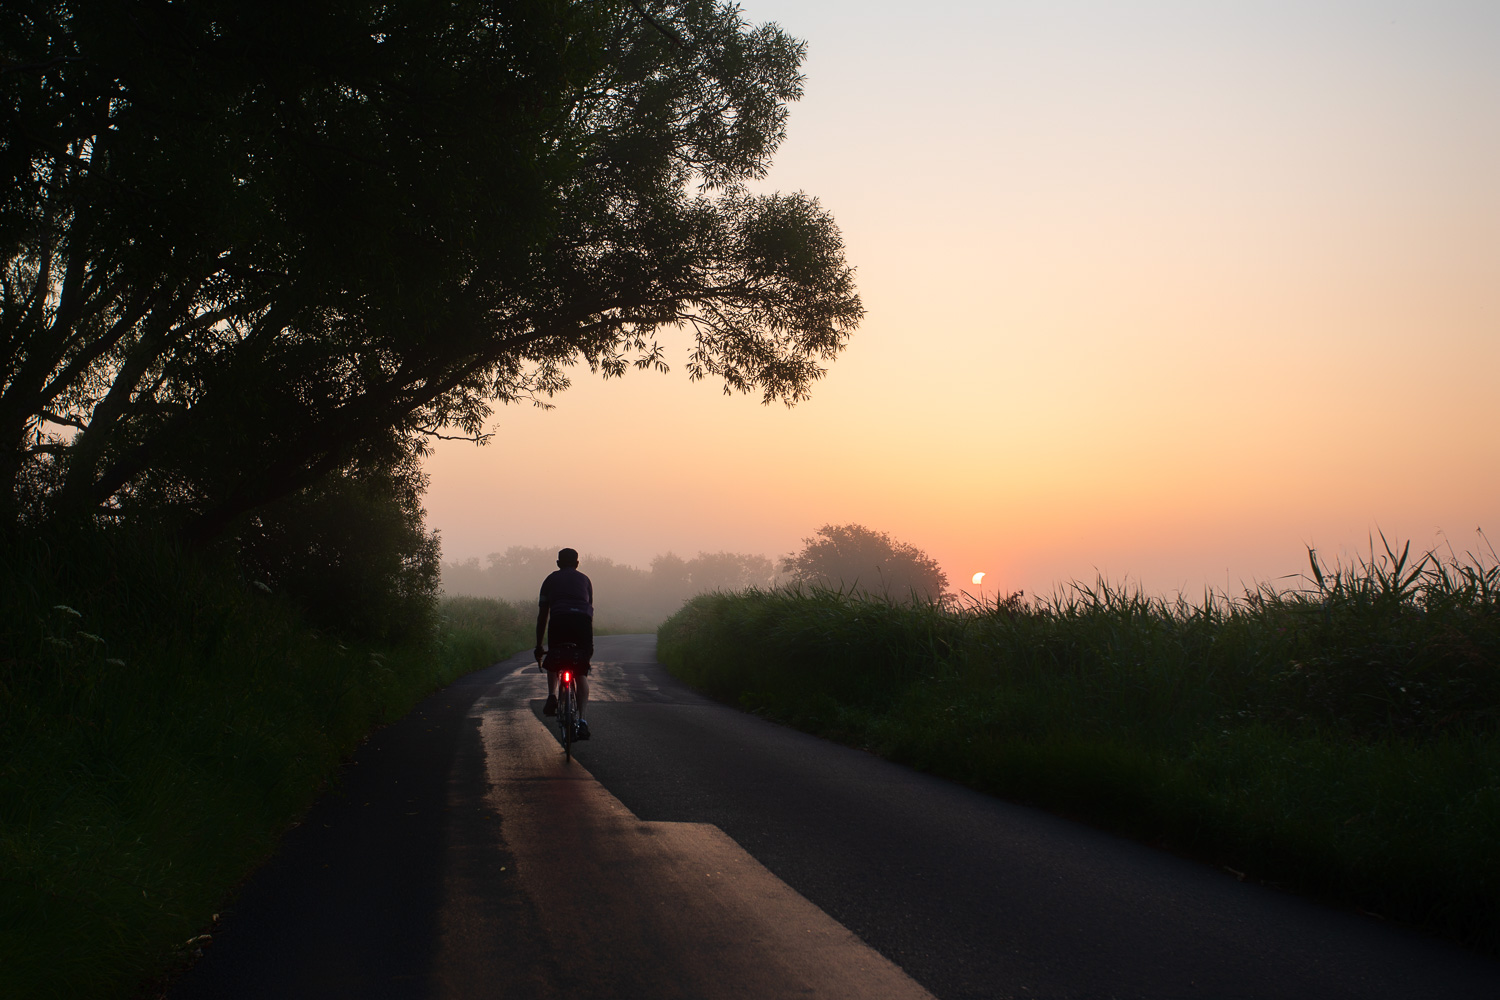 A dawn cyclist pedals toward the sunrise on English country lane